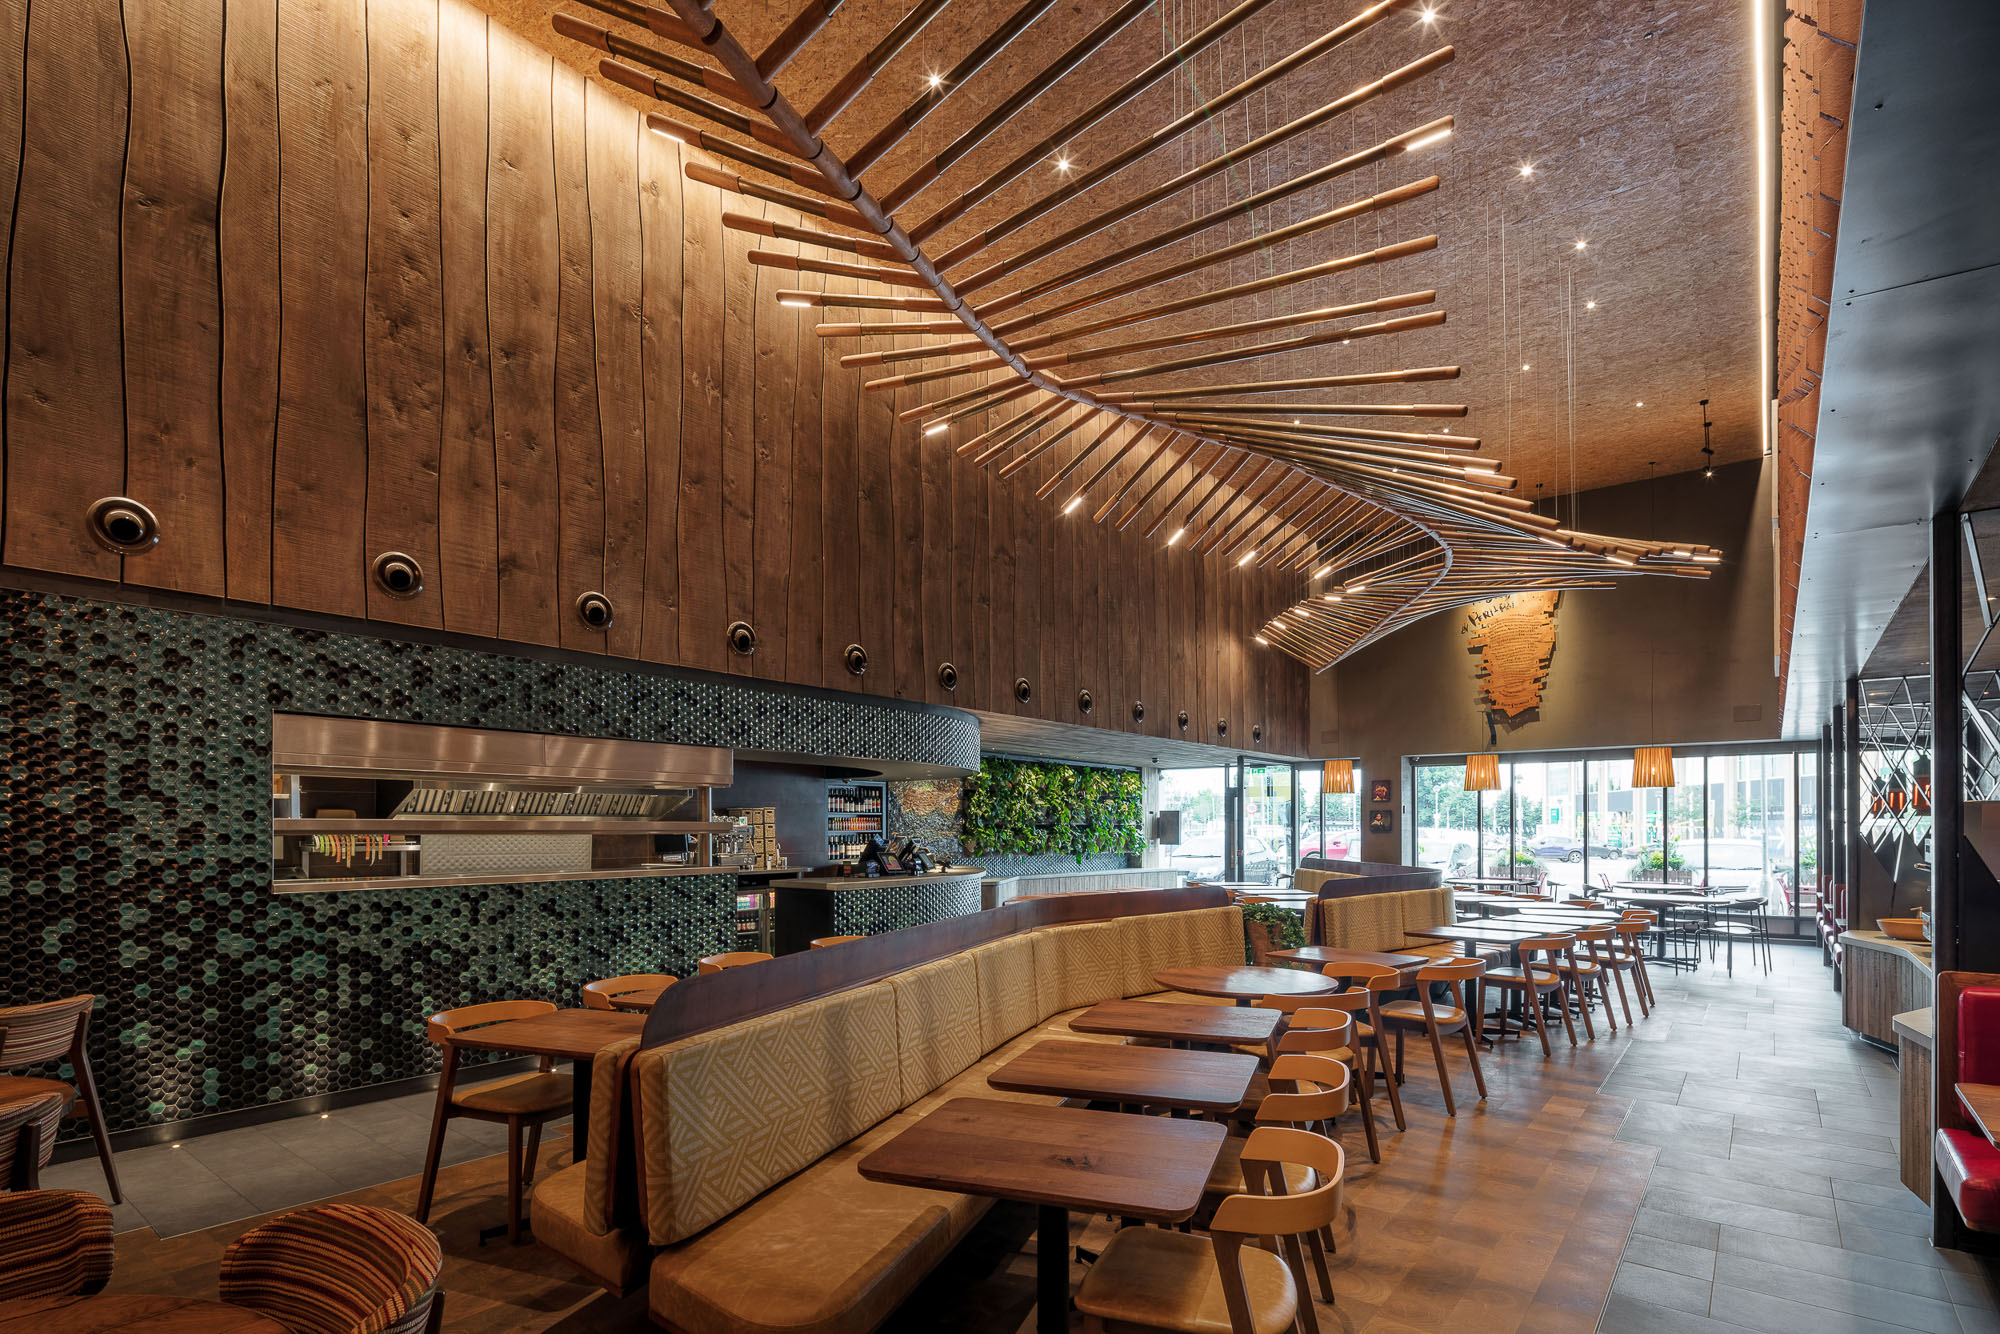 Architectural image of a restaurant interior captured from a 2-point perspective